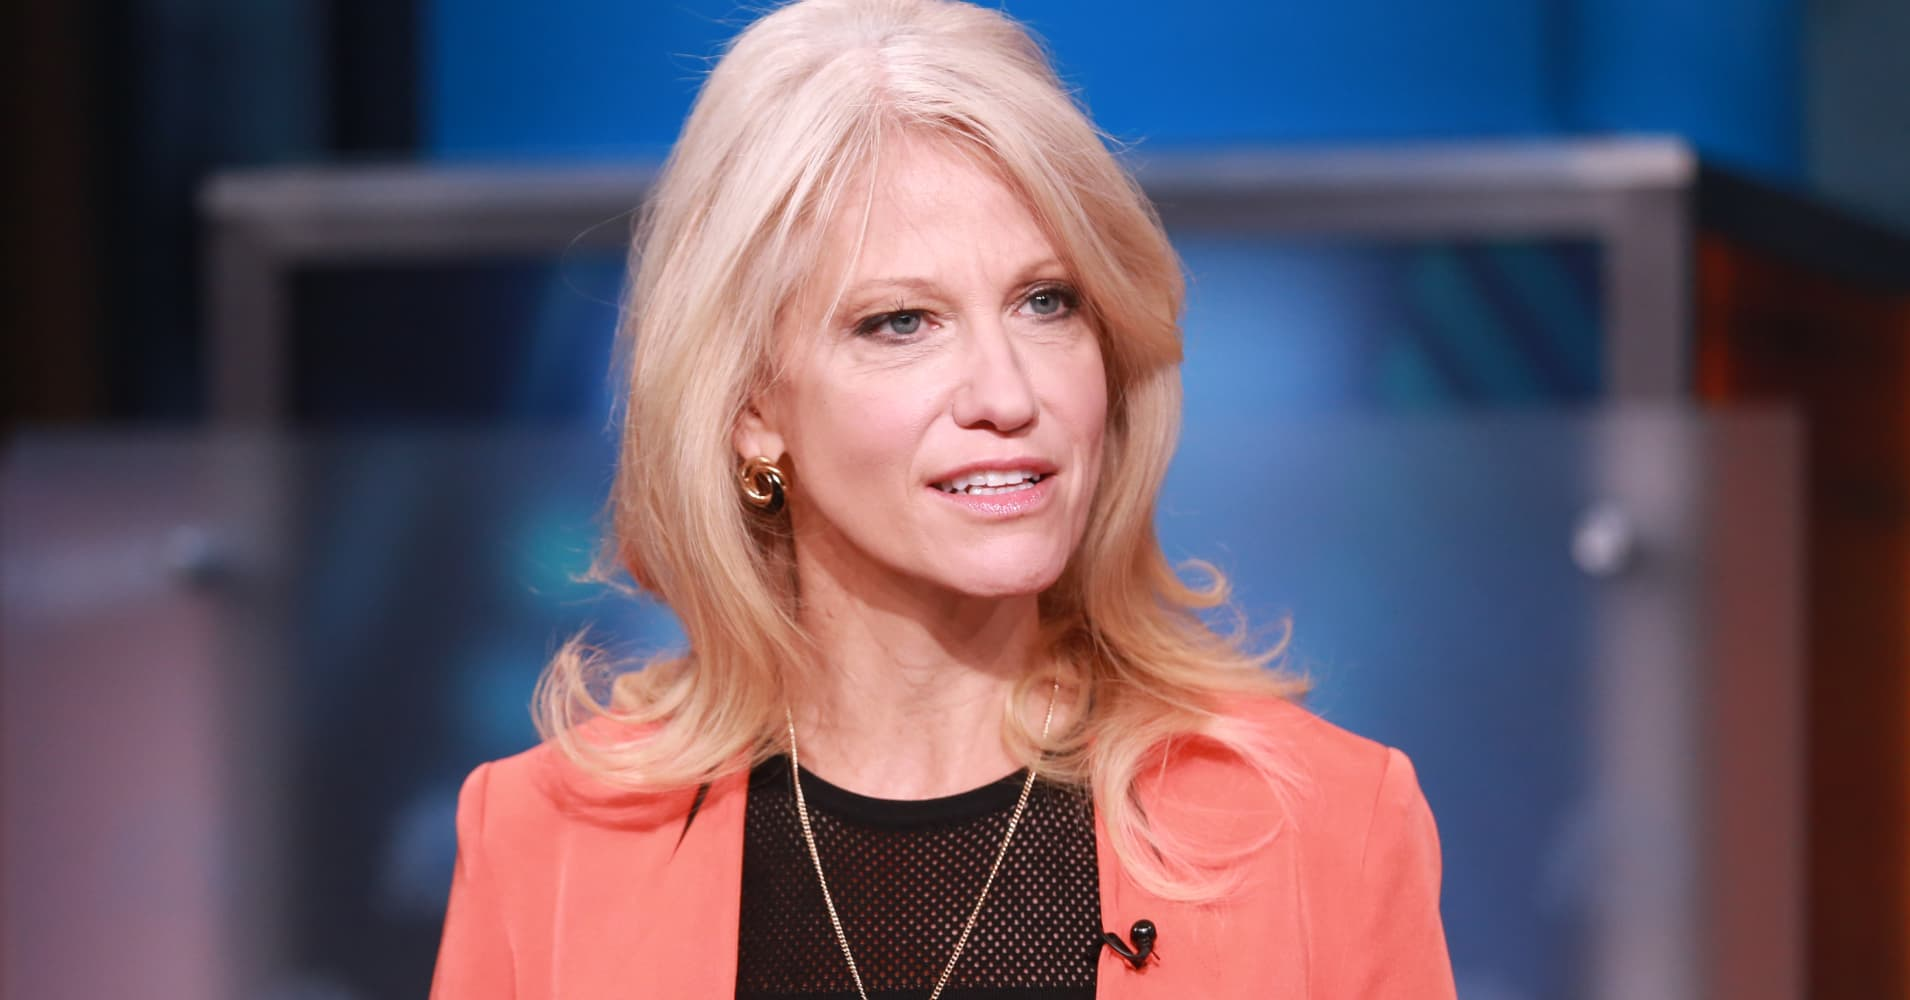 trump s new campaign manager conway we ve had a rough two weeks trump s new campaign manager conway we ve had a rough two weeks but there s great momentum ahead